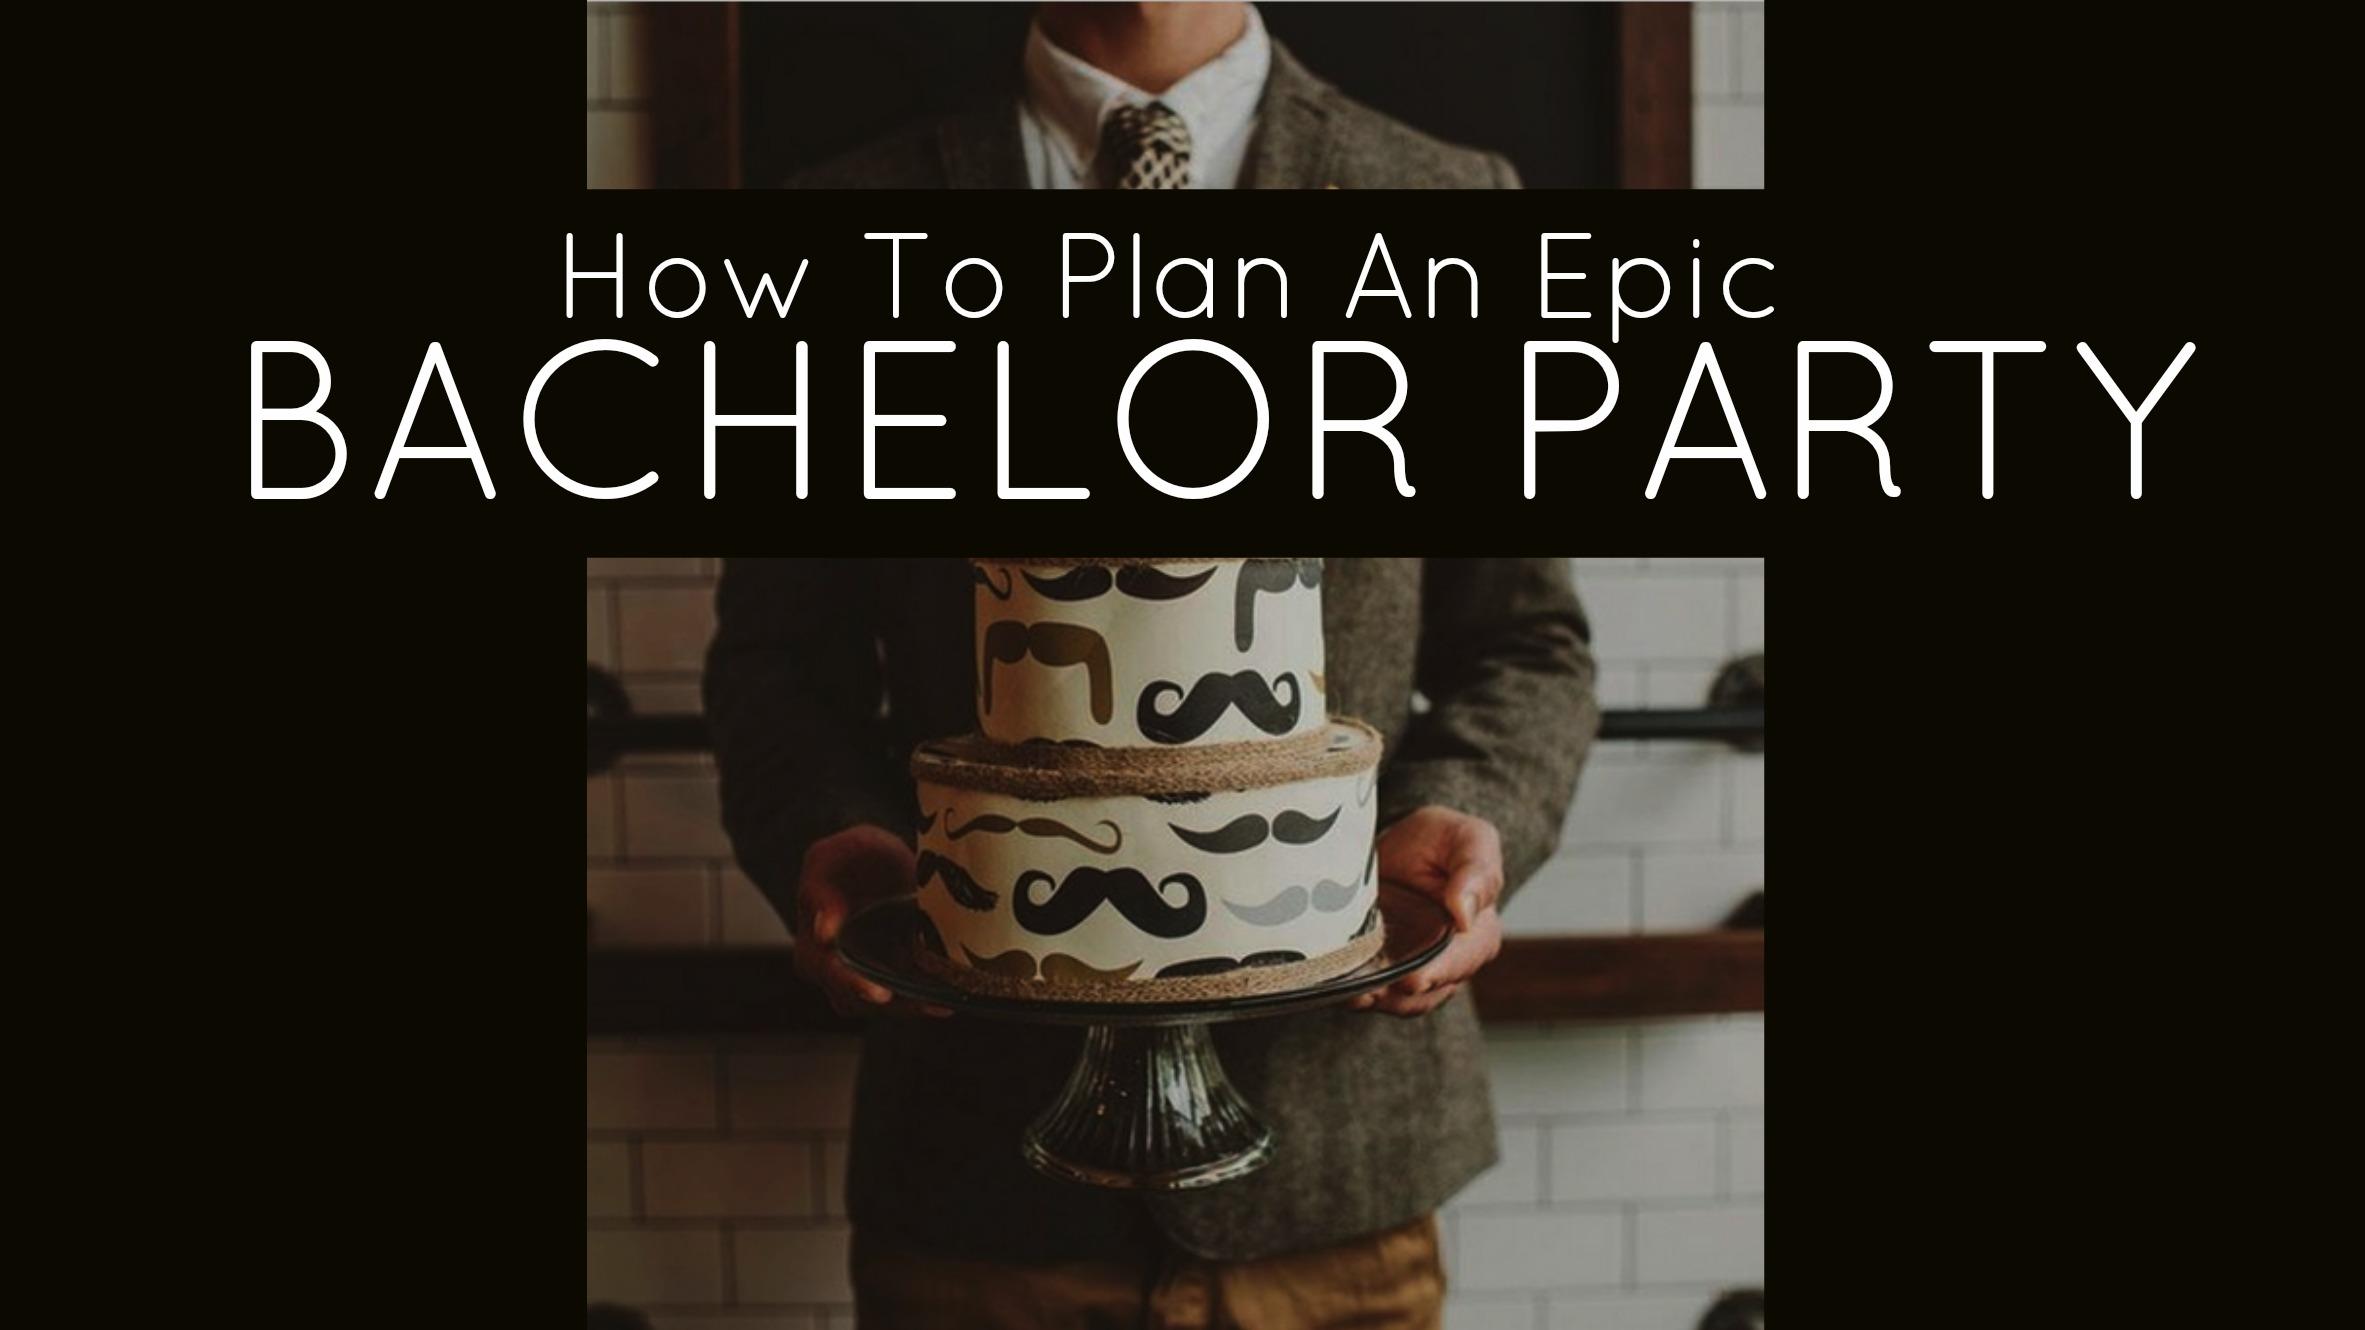 How to plan an Epic Bachelor Party - Bachelor Party Ideas, Awesome Bachelor Party Ideas, Bachelor Party Prank,